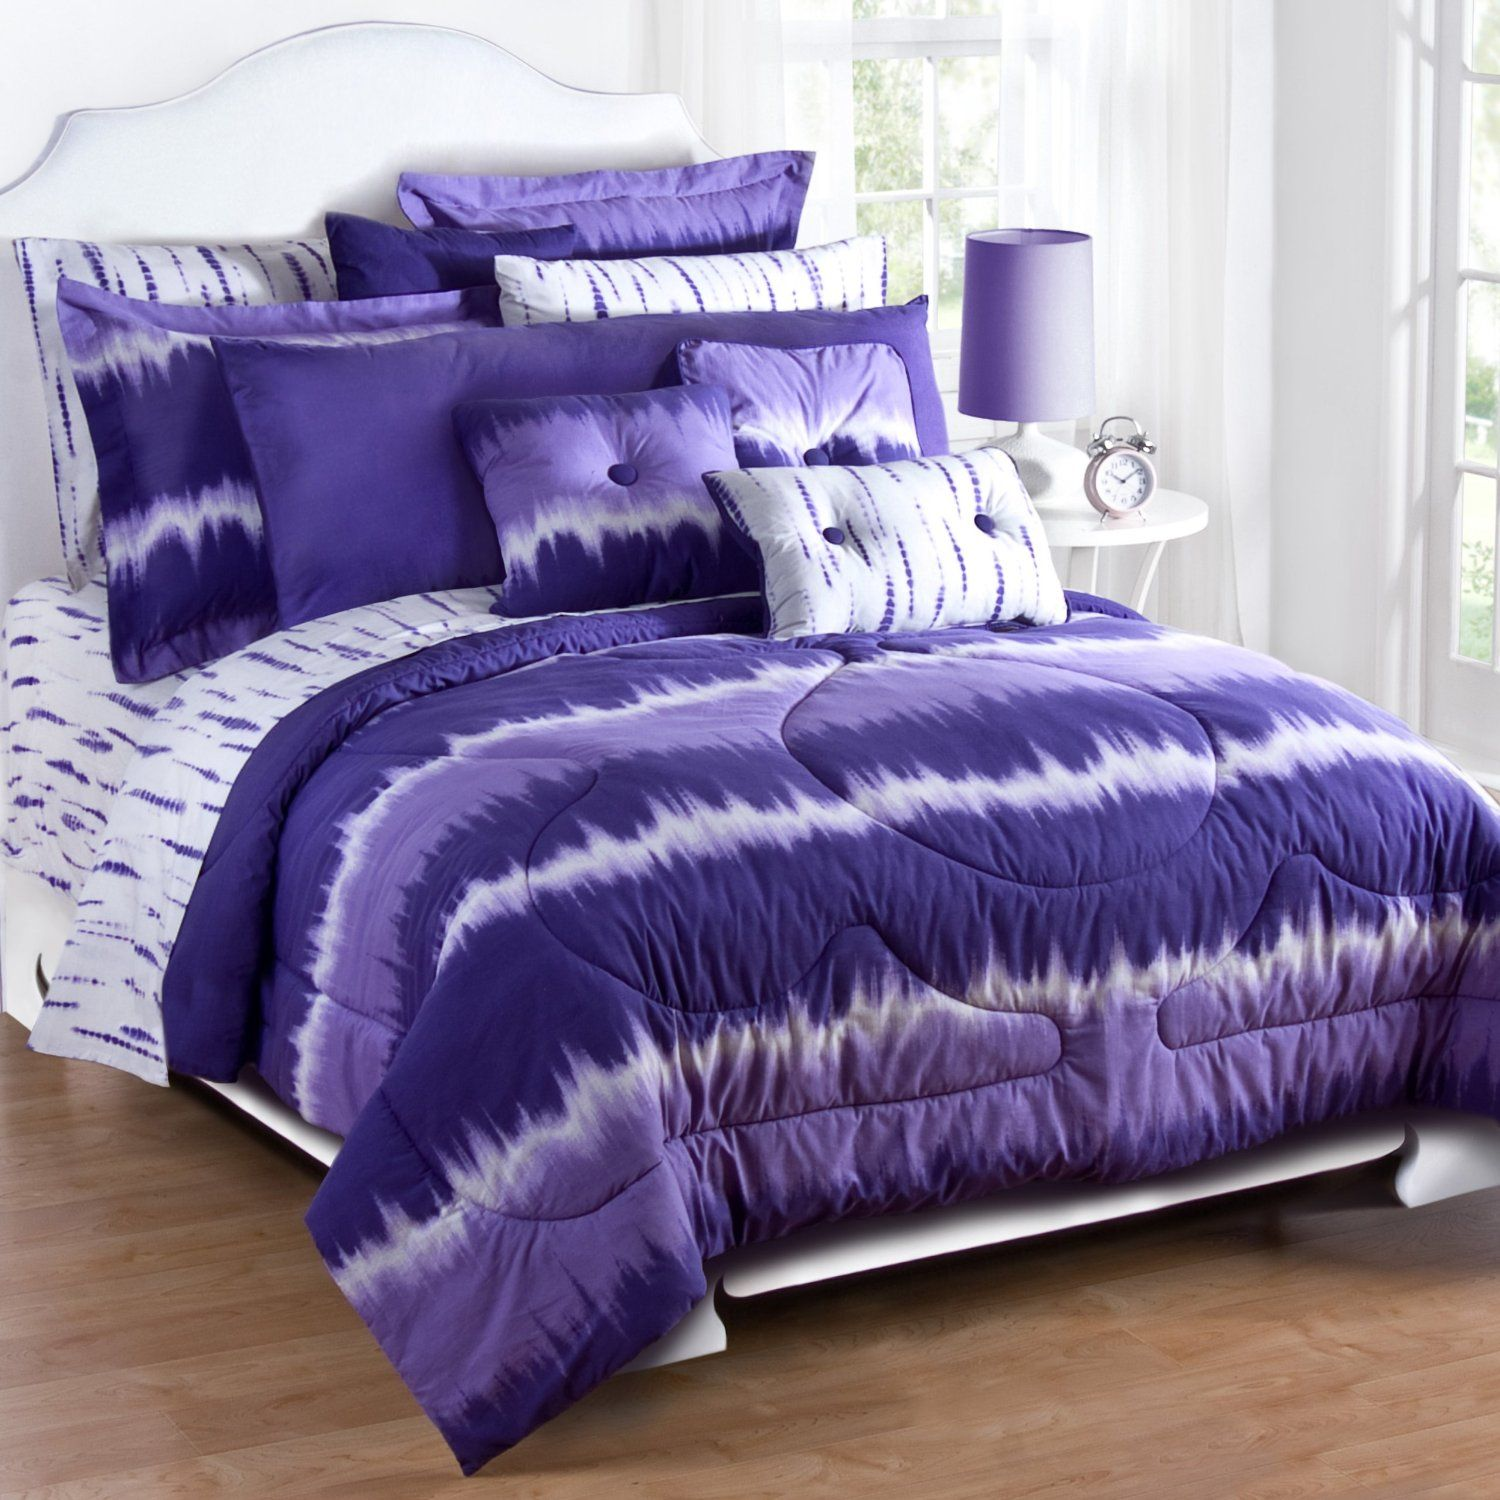 Design Comforters For Teens purple tie dye comforter set omg i want this this